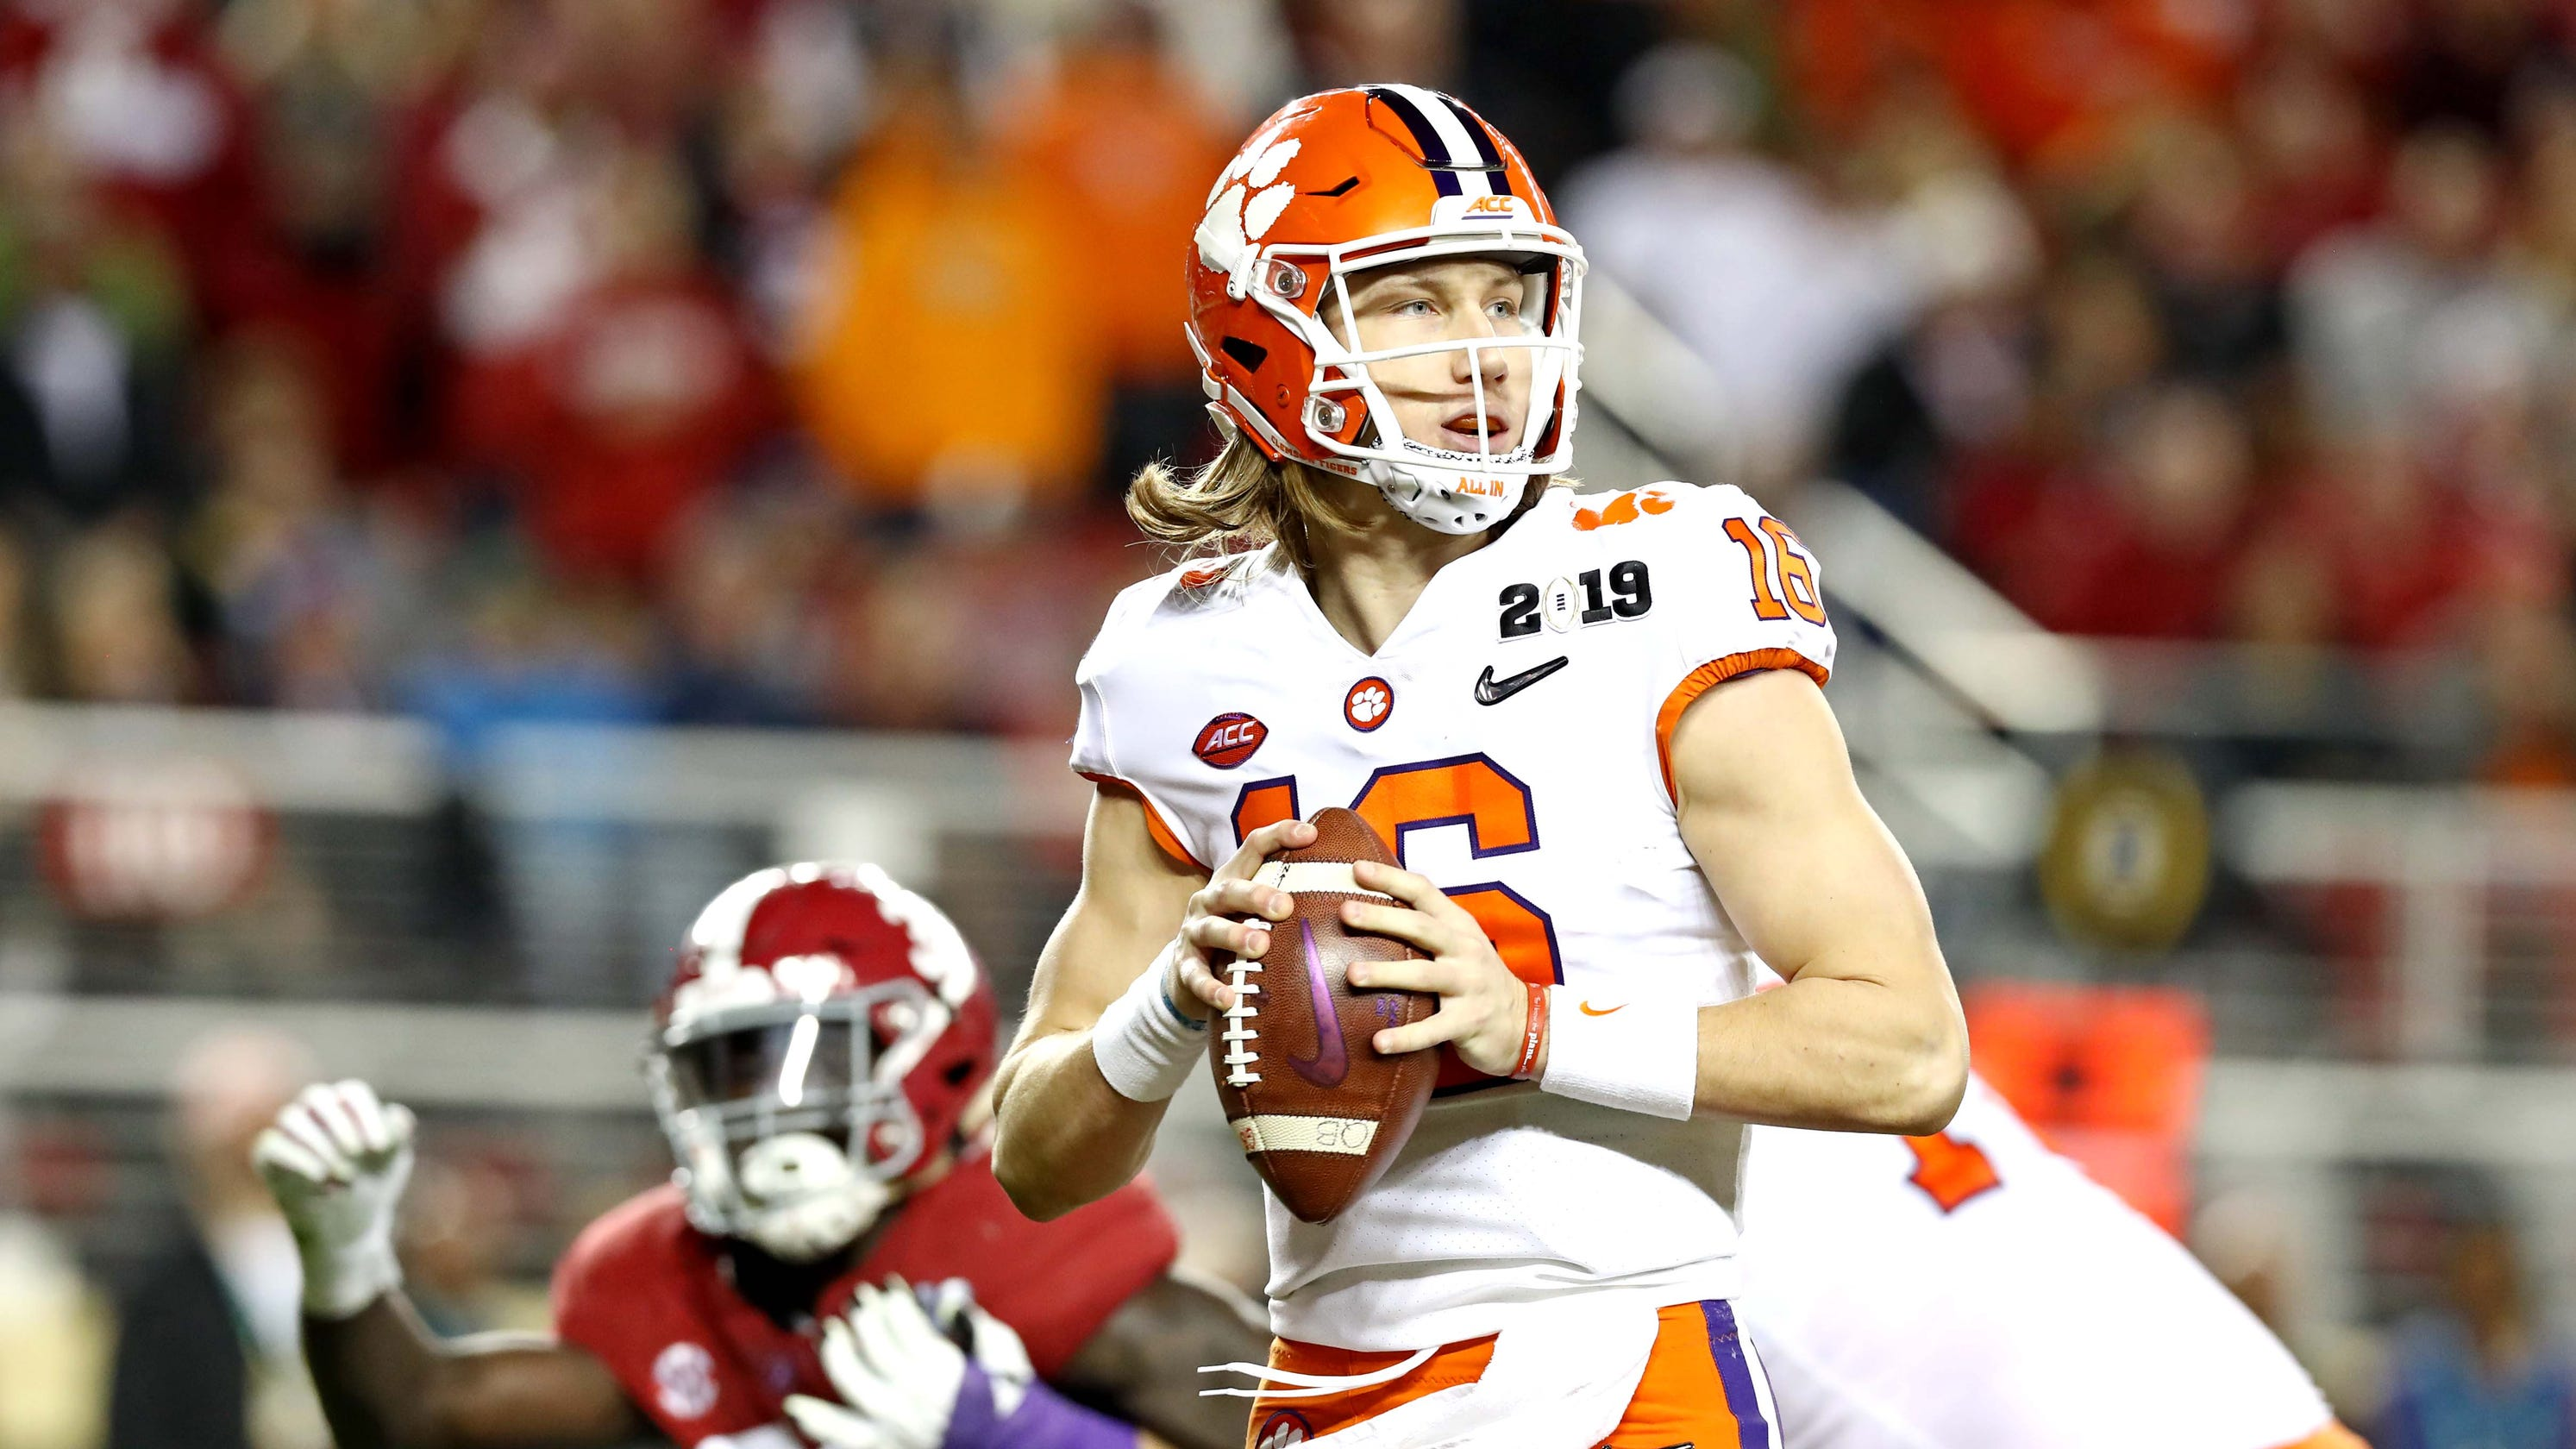 Early Top 25 college football teams for 2019